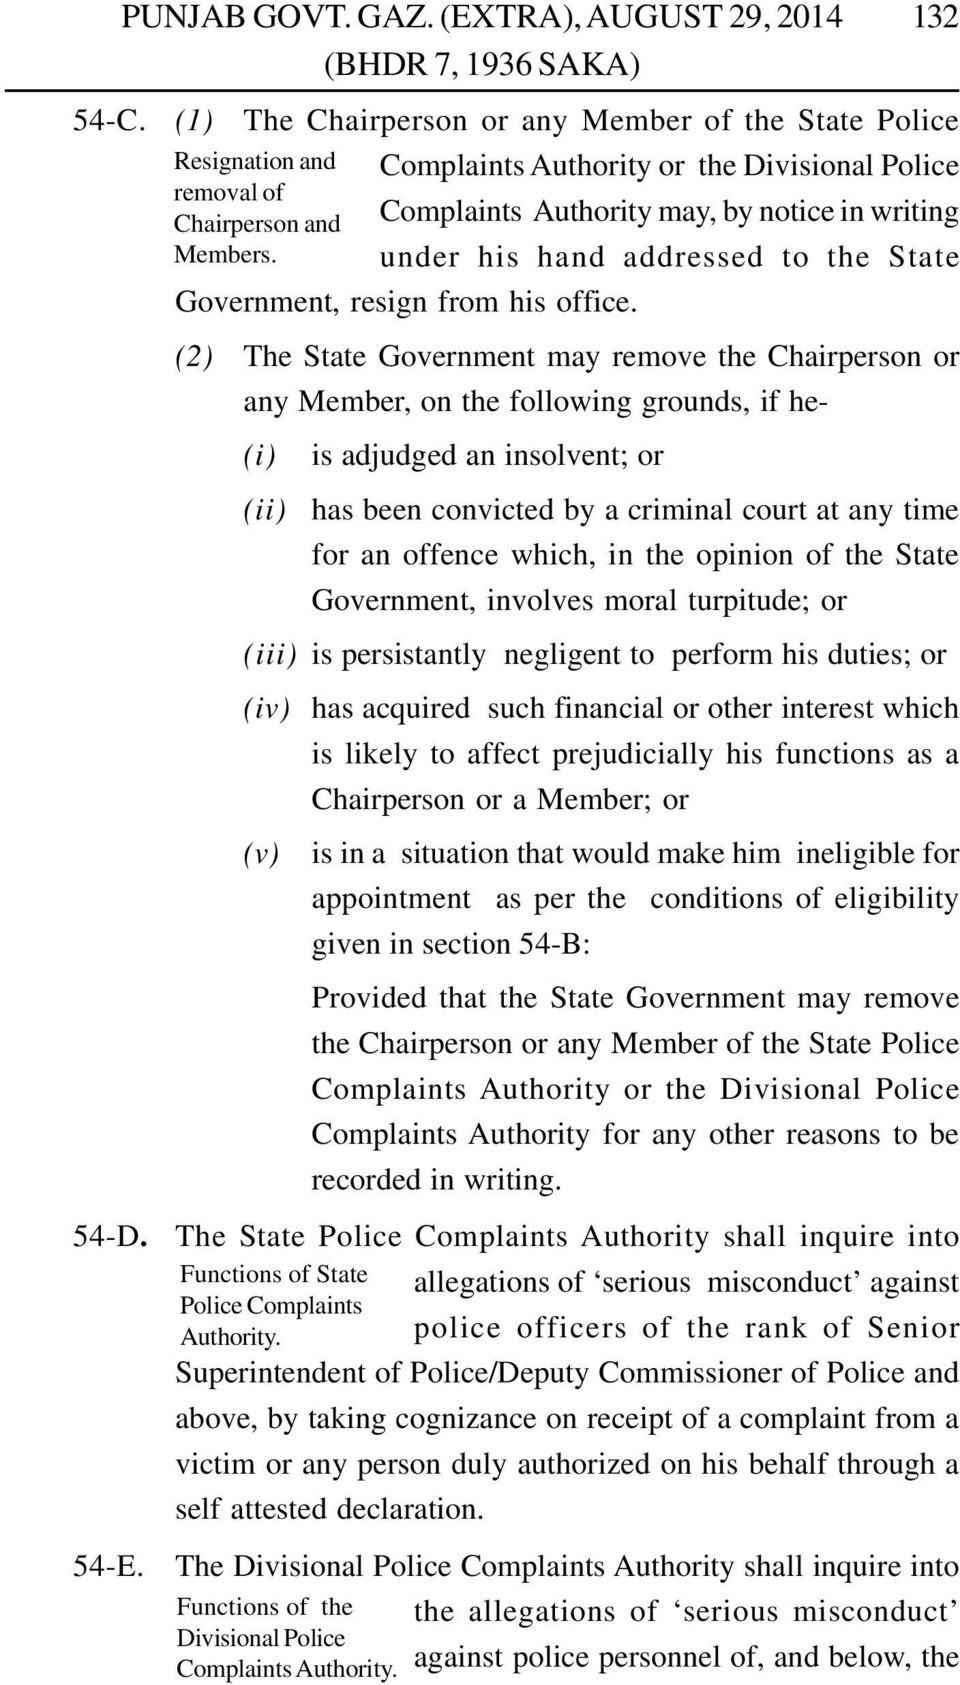 (2) The State Government may remove the Chairperson or any Member, on the following grounds, if he- (i) (ii) is adjudged an insolvent; or has been convicted by a criminal court at any time for an